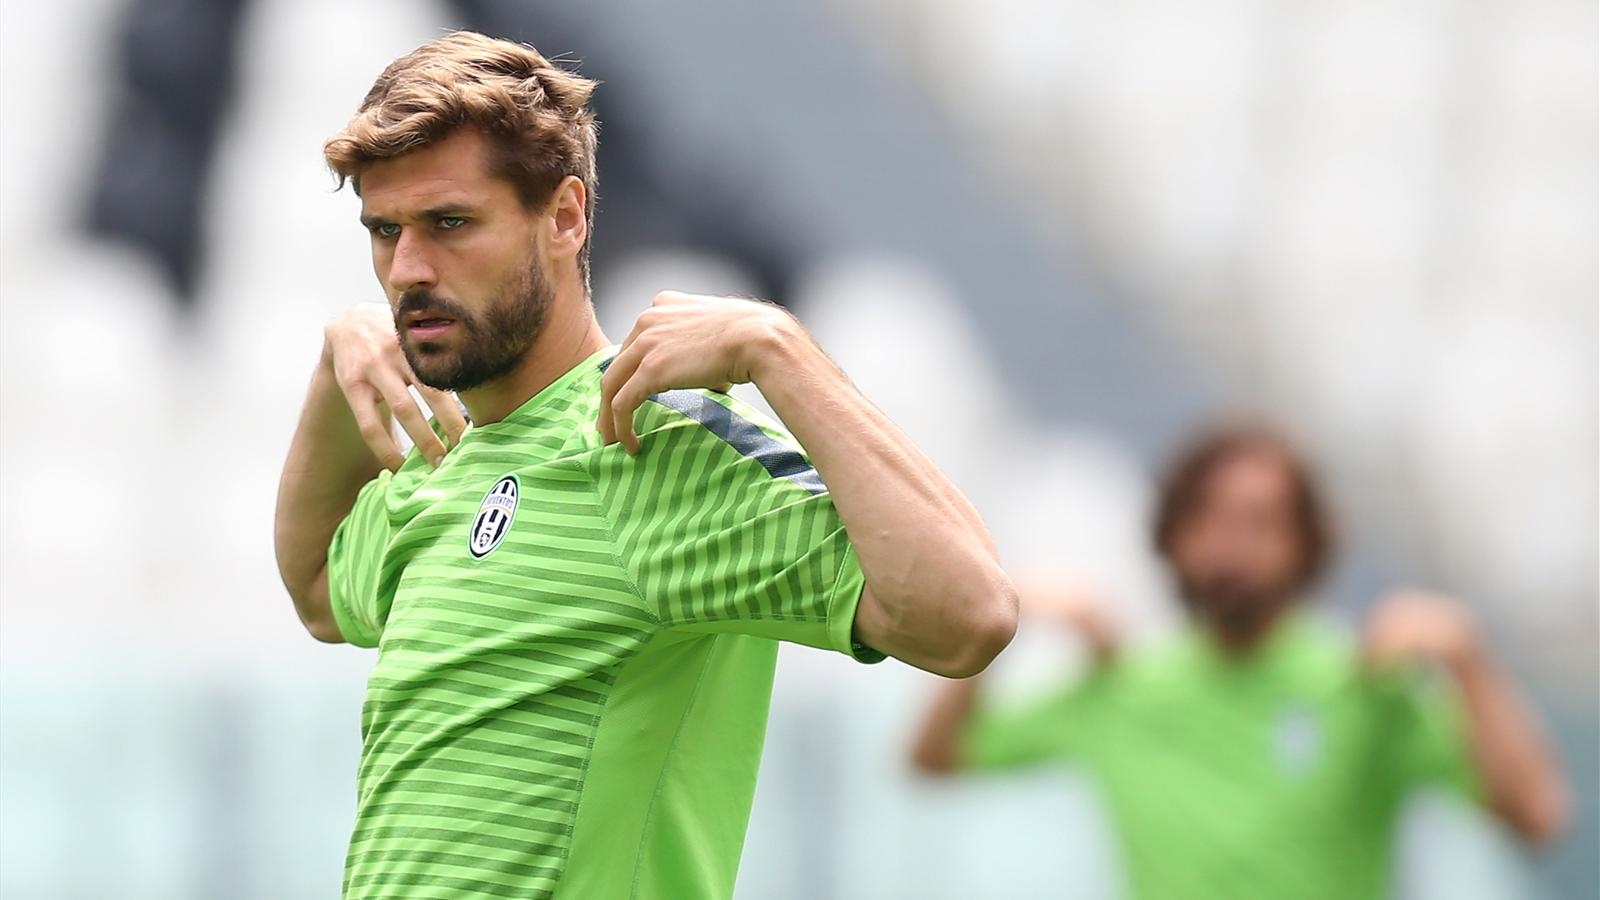 Juventus' Spanish forward Javier Fernando Torres Llorente takes part in a training session on June 1, 2015 at the Juventus Stadium in Turin, five days ahead of the UEFA Champions League football final against Barcelona